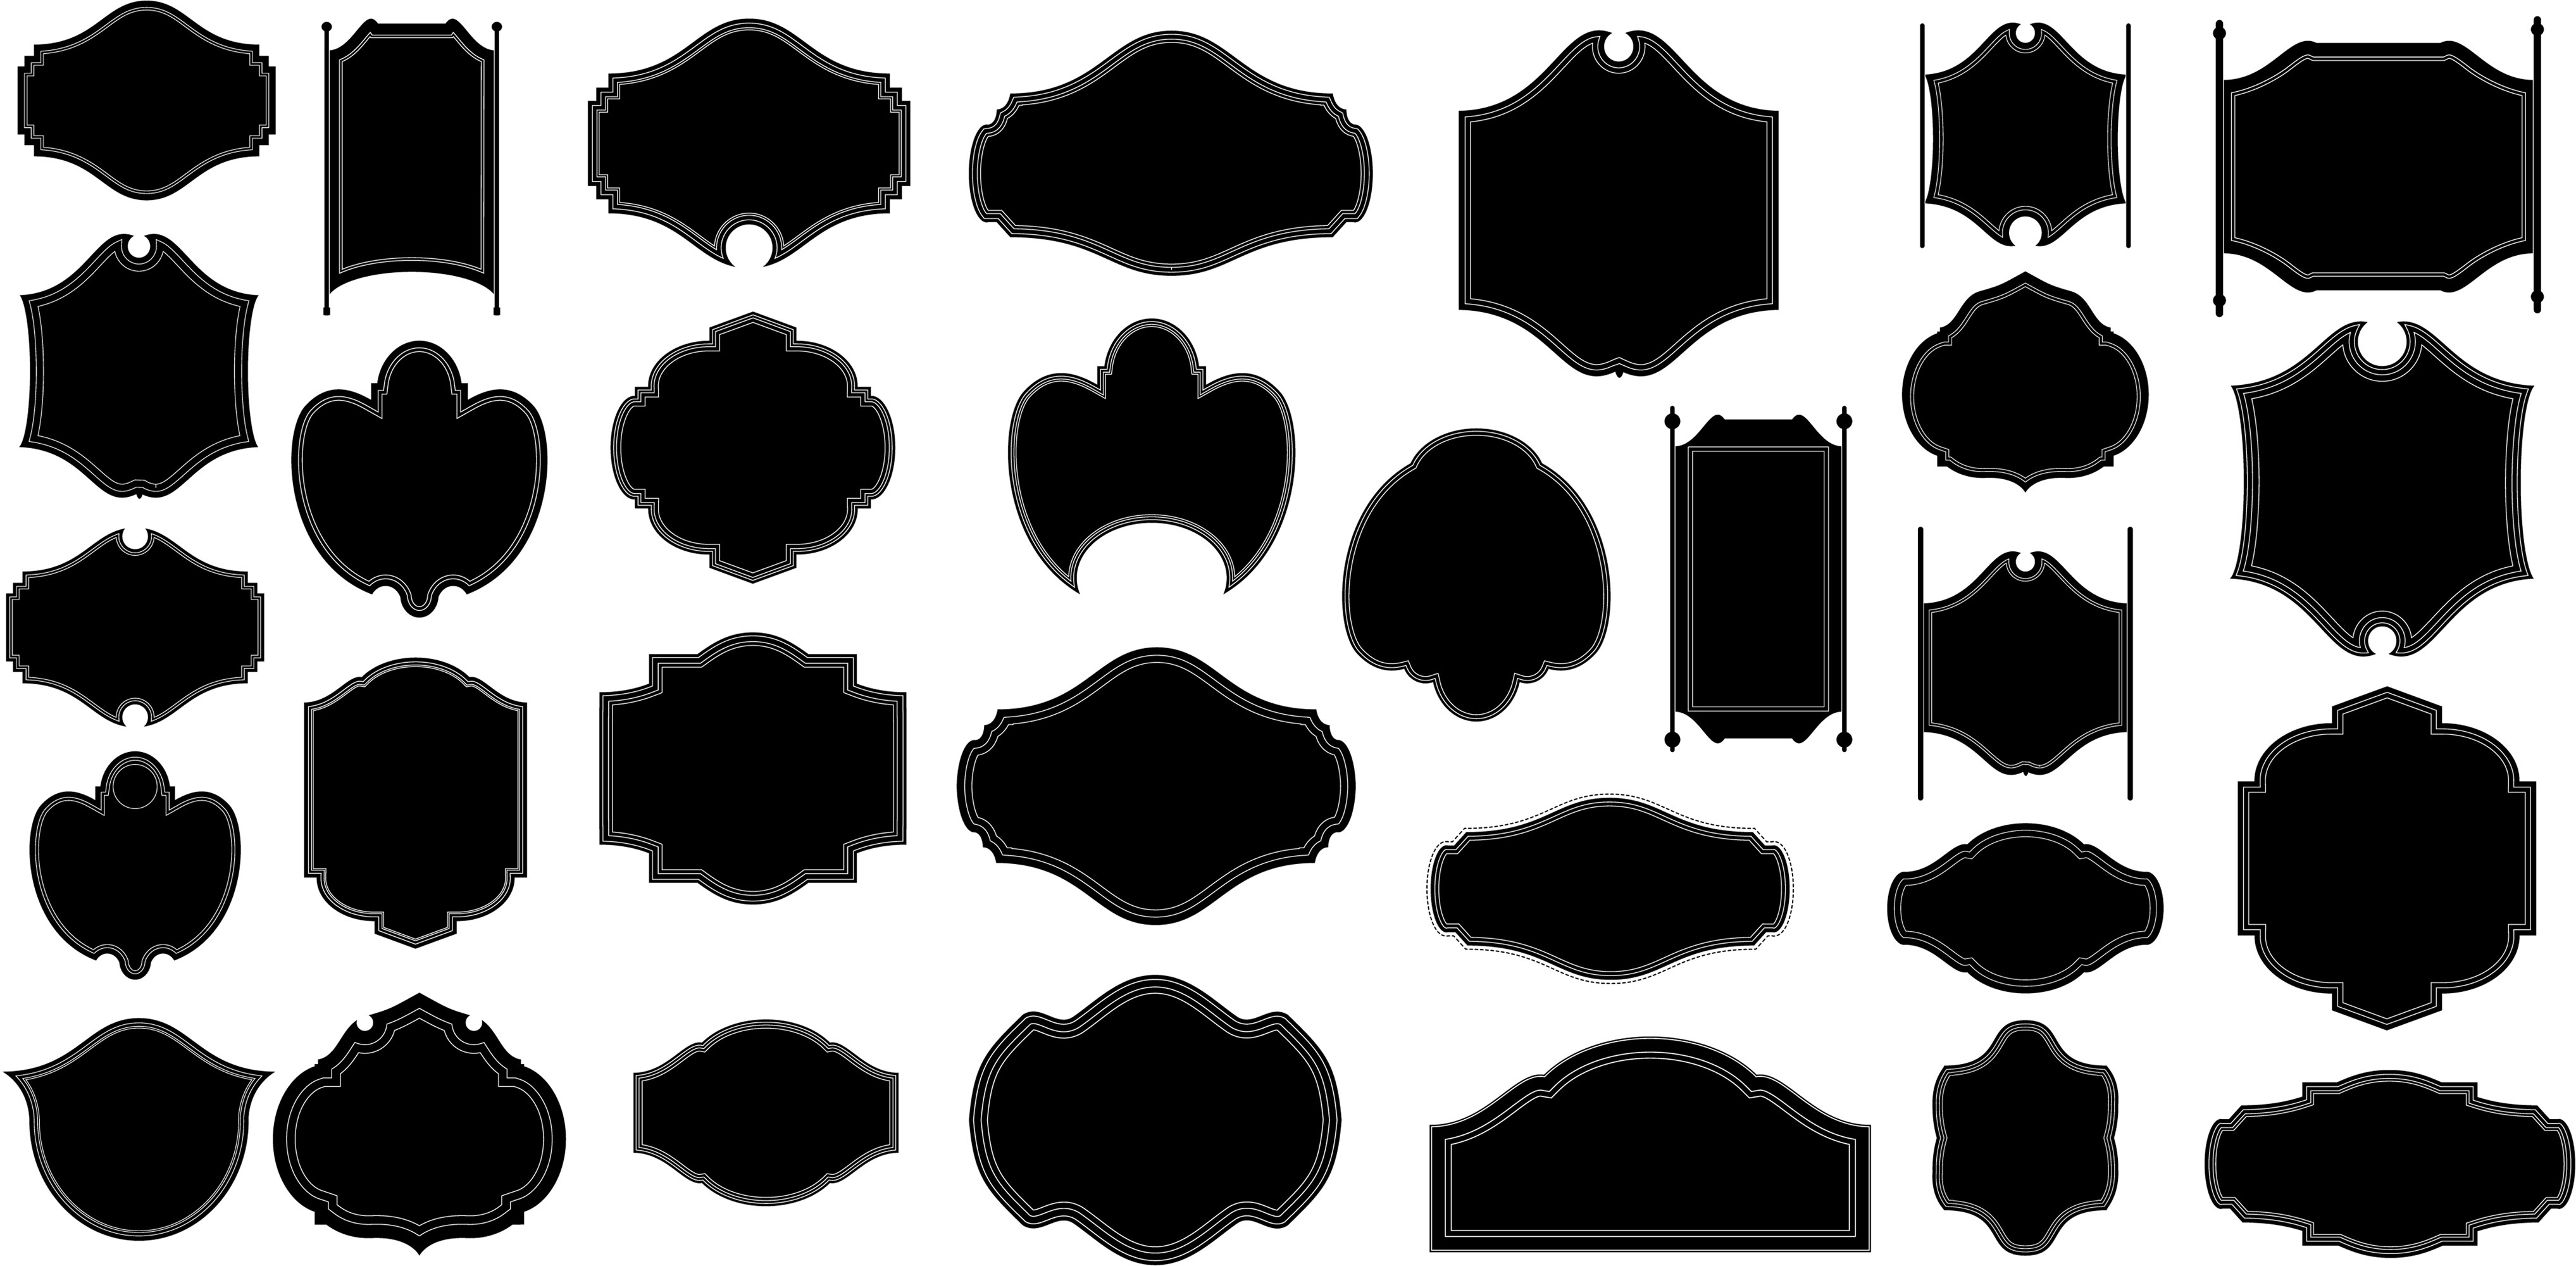 15 Shapes Vector Frame Images - Label Shapes Vector ...